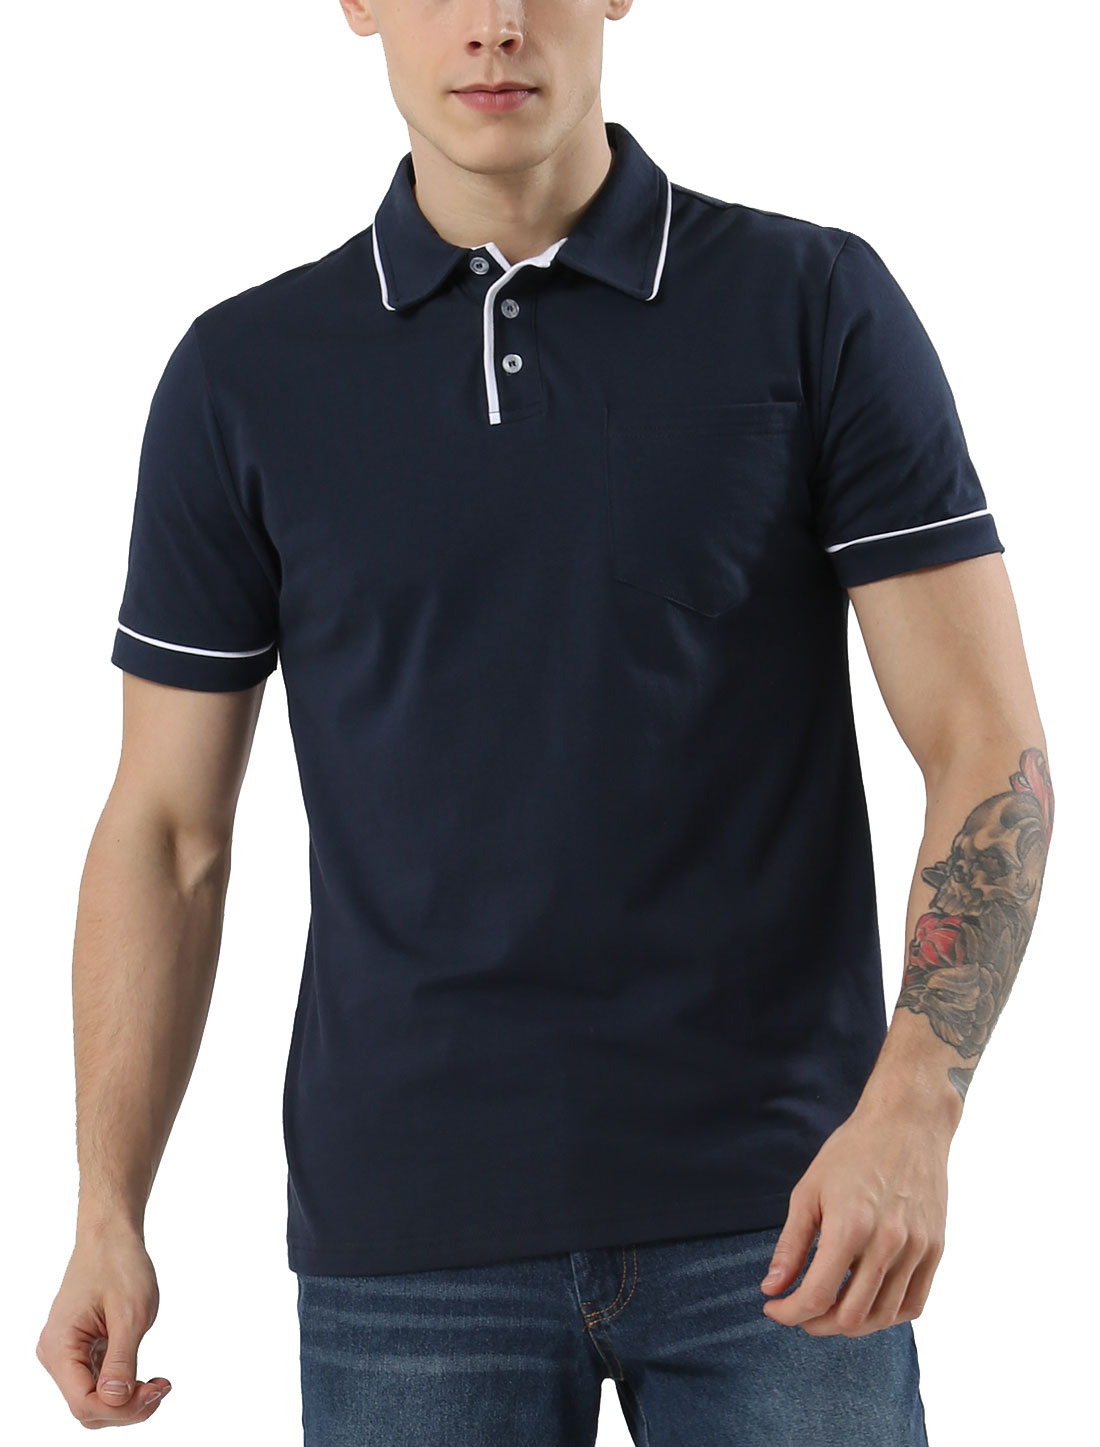 Men Color Block Chest Pocket Piping Short Sleeves Polo Shirt Navy Blue Large